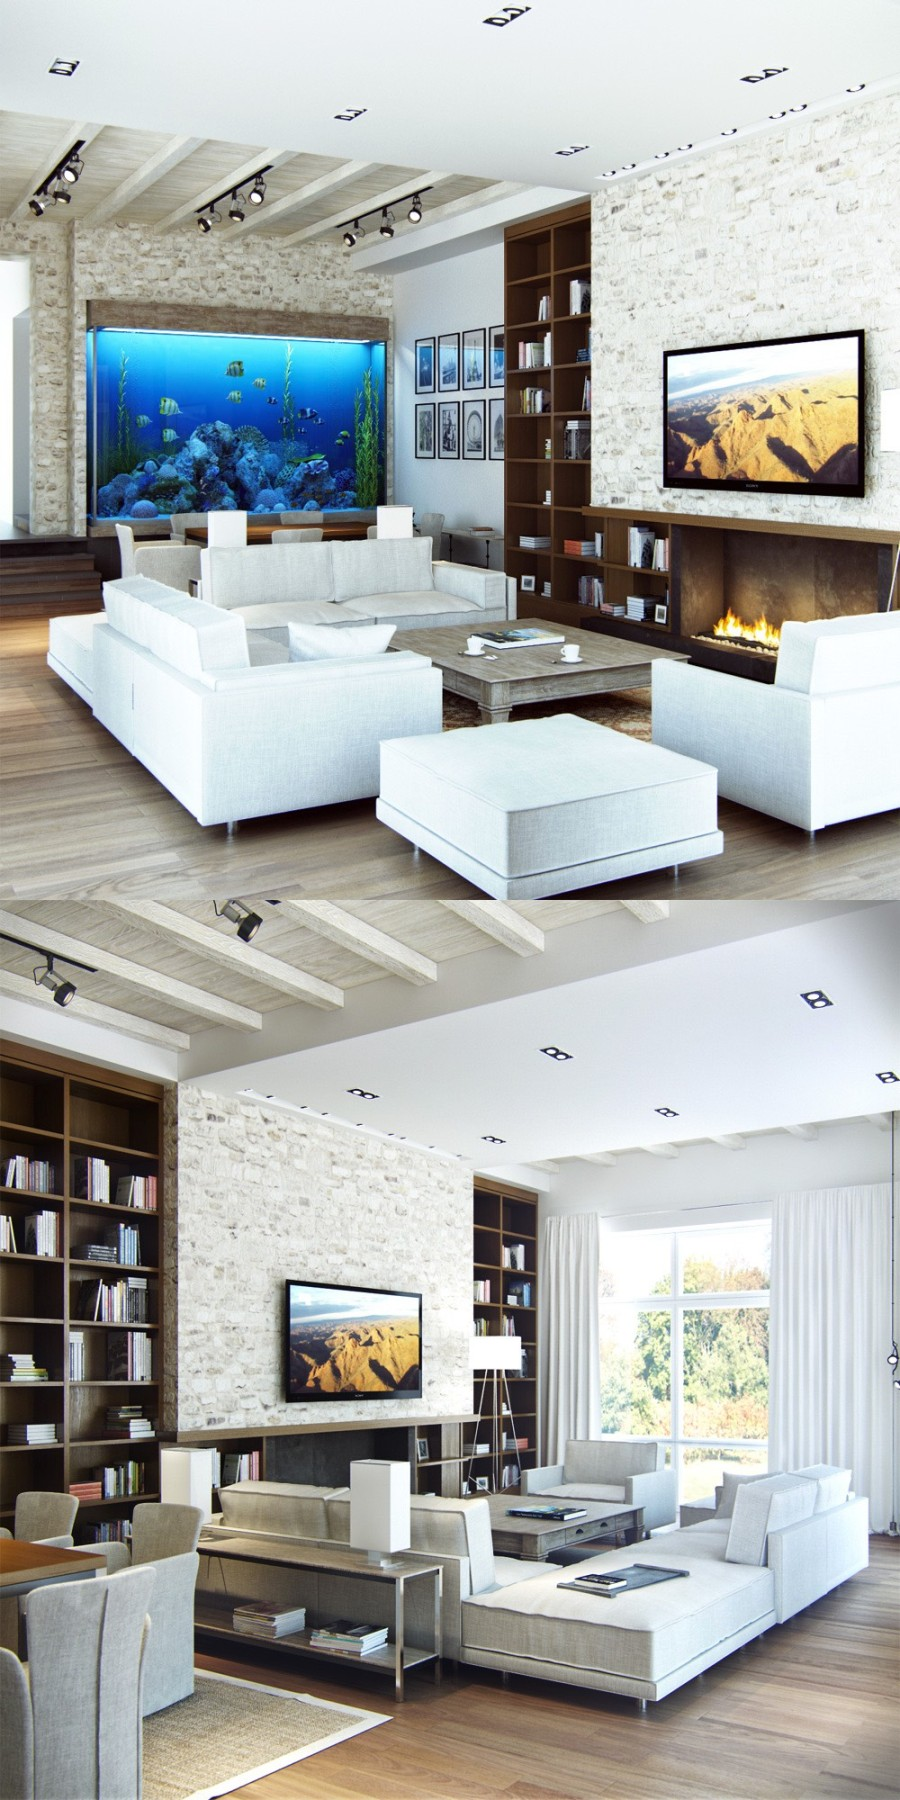 23-white-brick-living-room